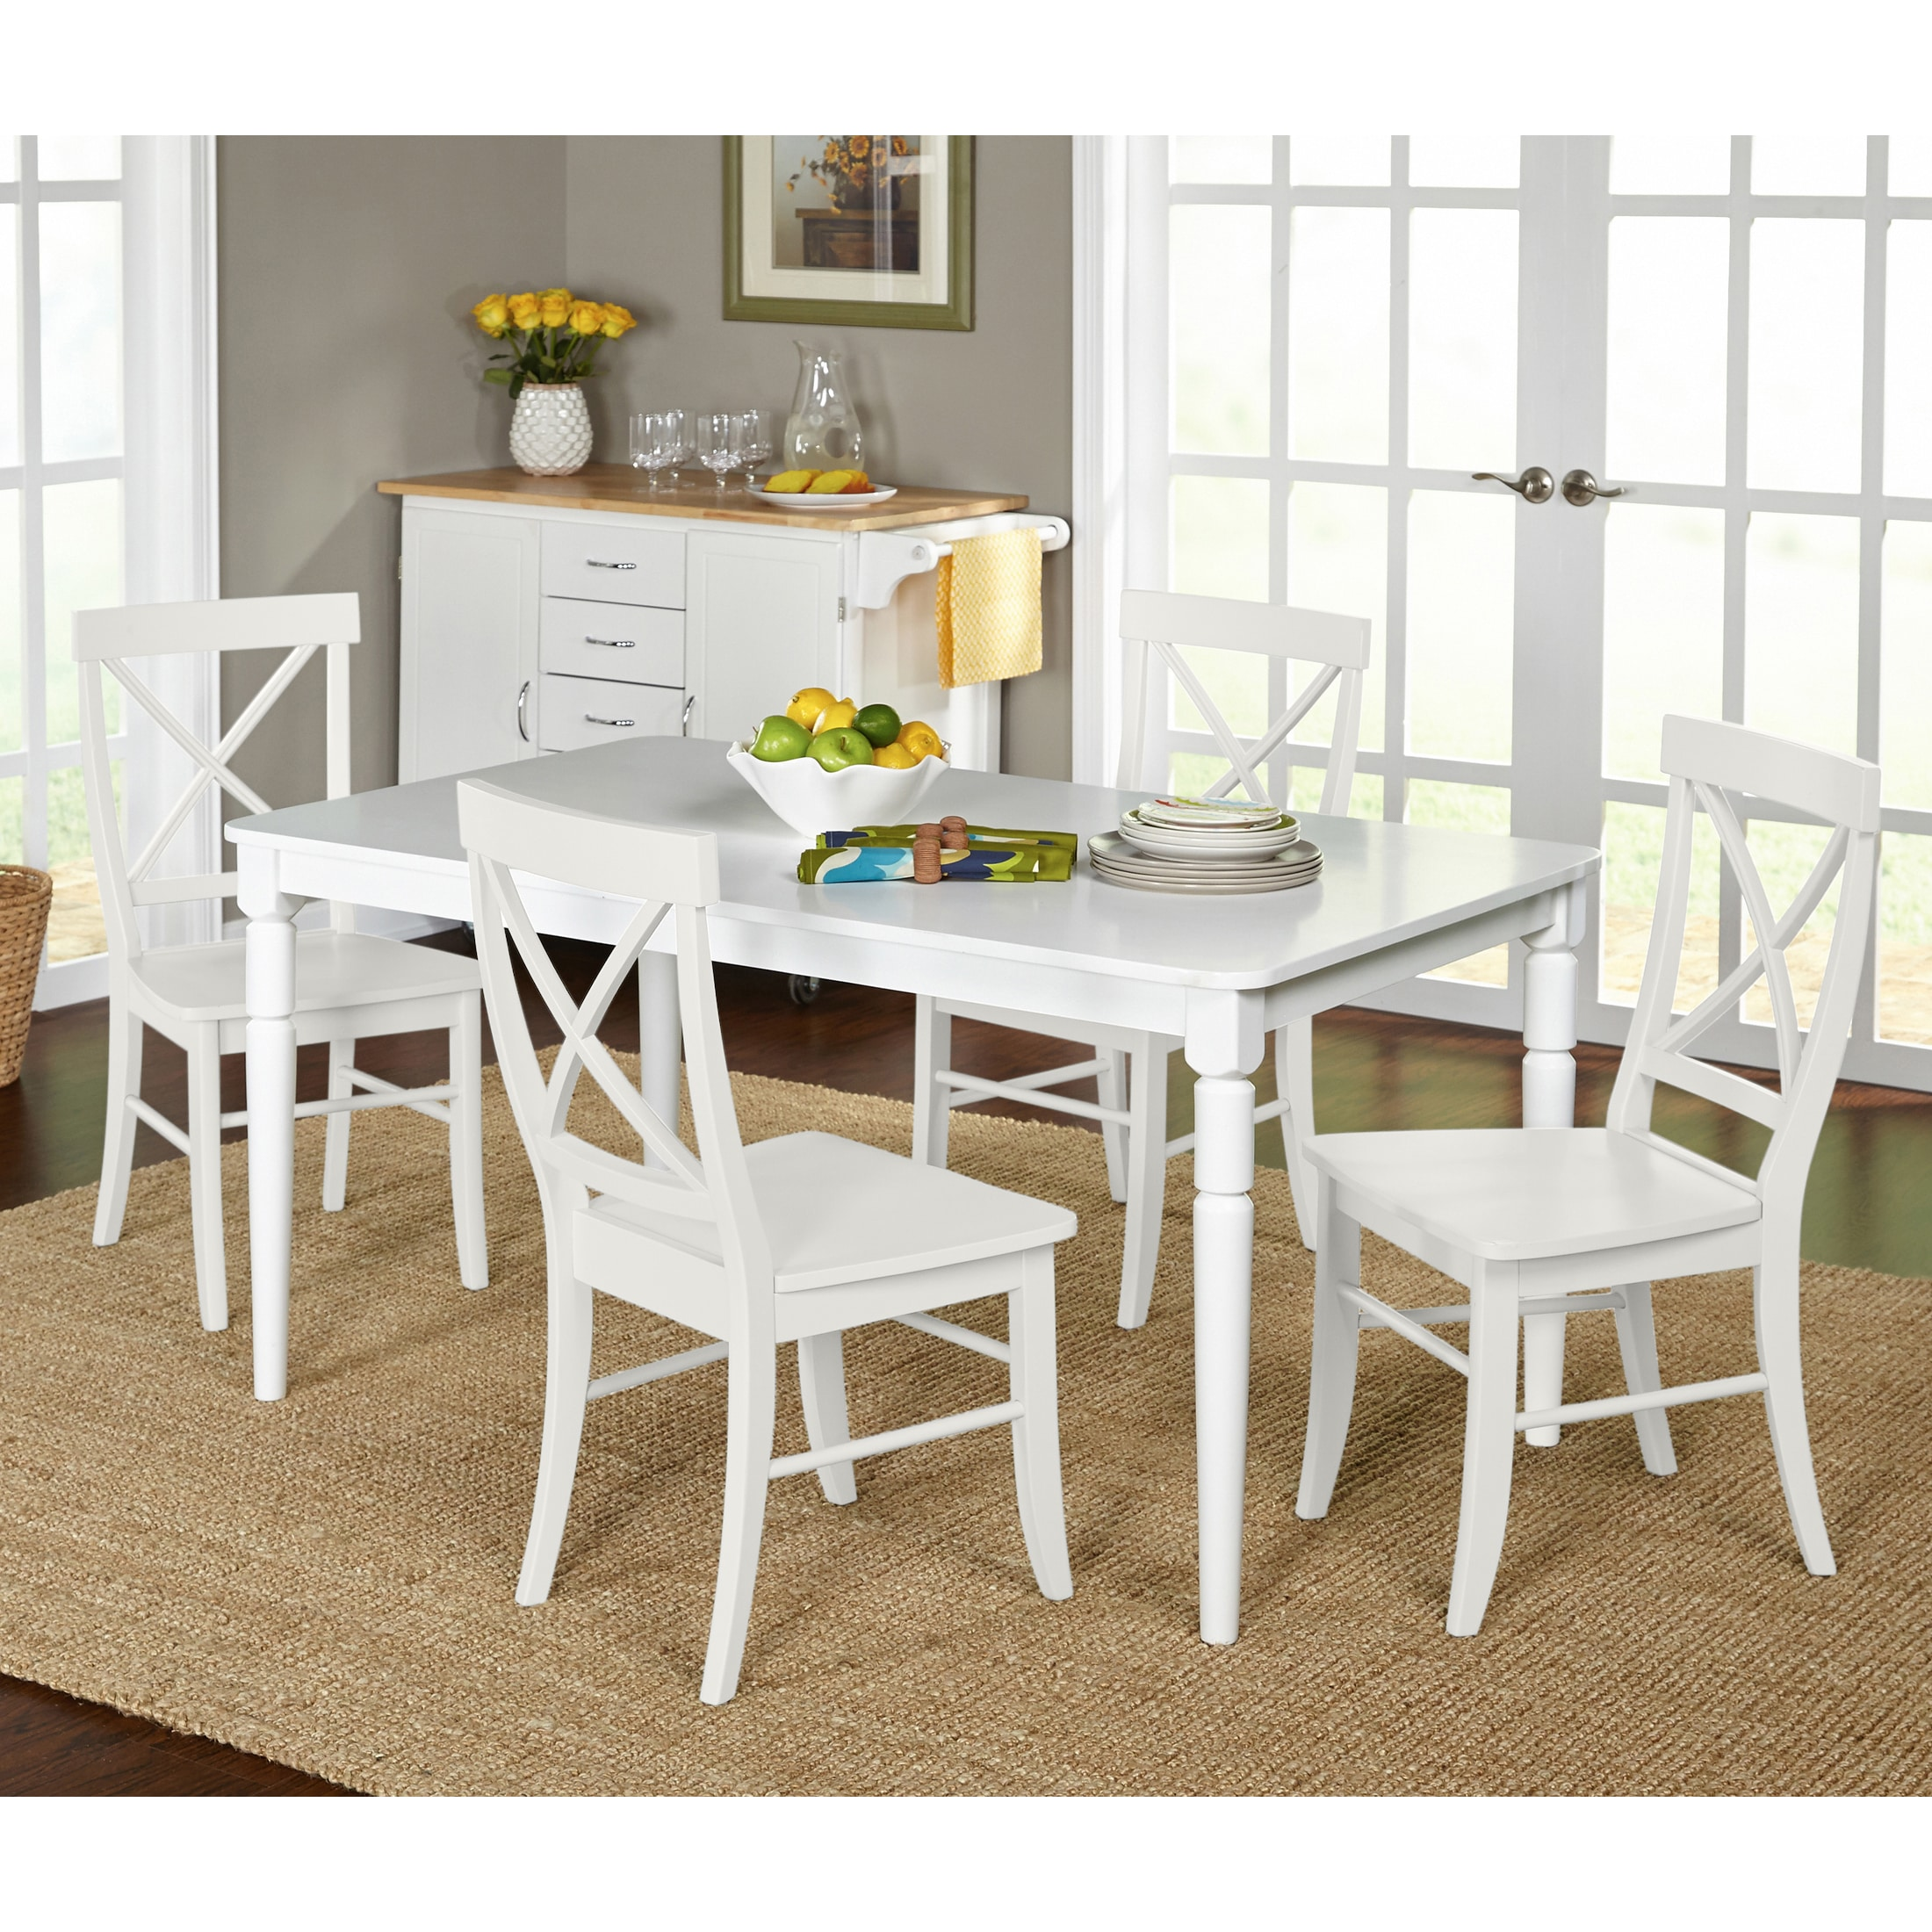 Genial Shop Simple Living 5 Piece Albury Cross Back Dining Set   On Sale   Free  Shipping Today   Overstock.com   10124355